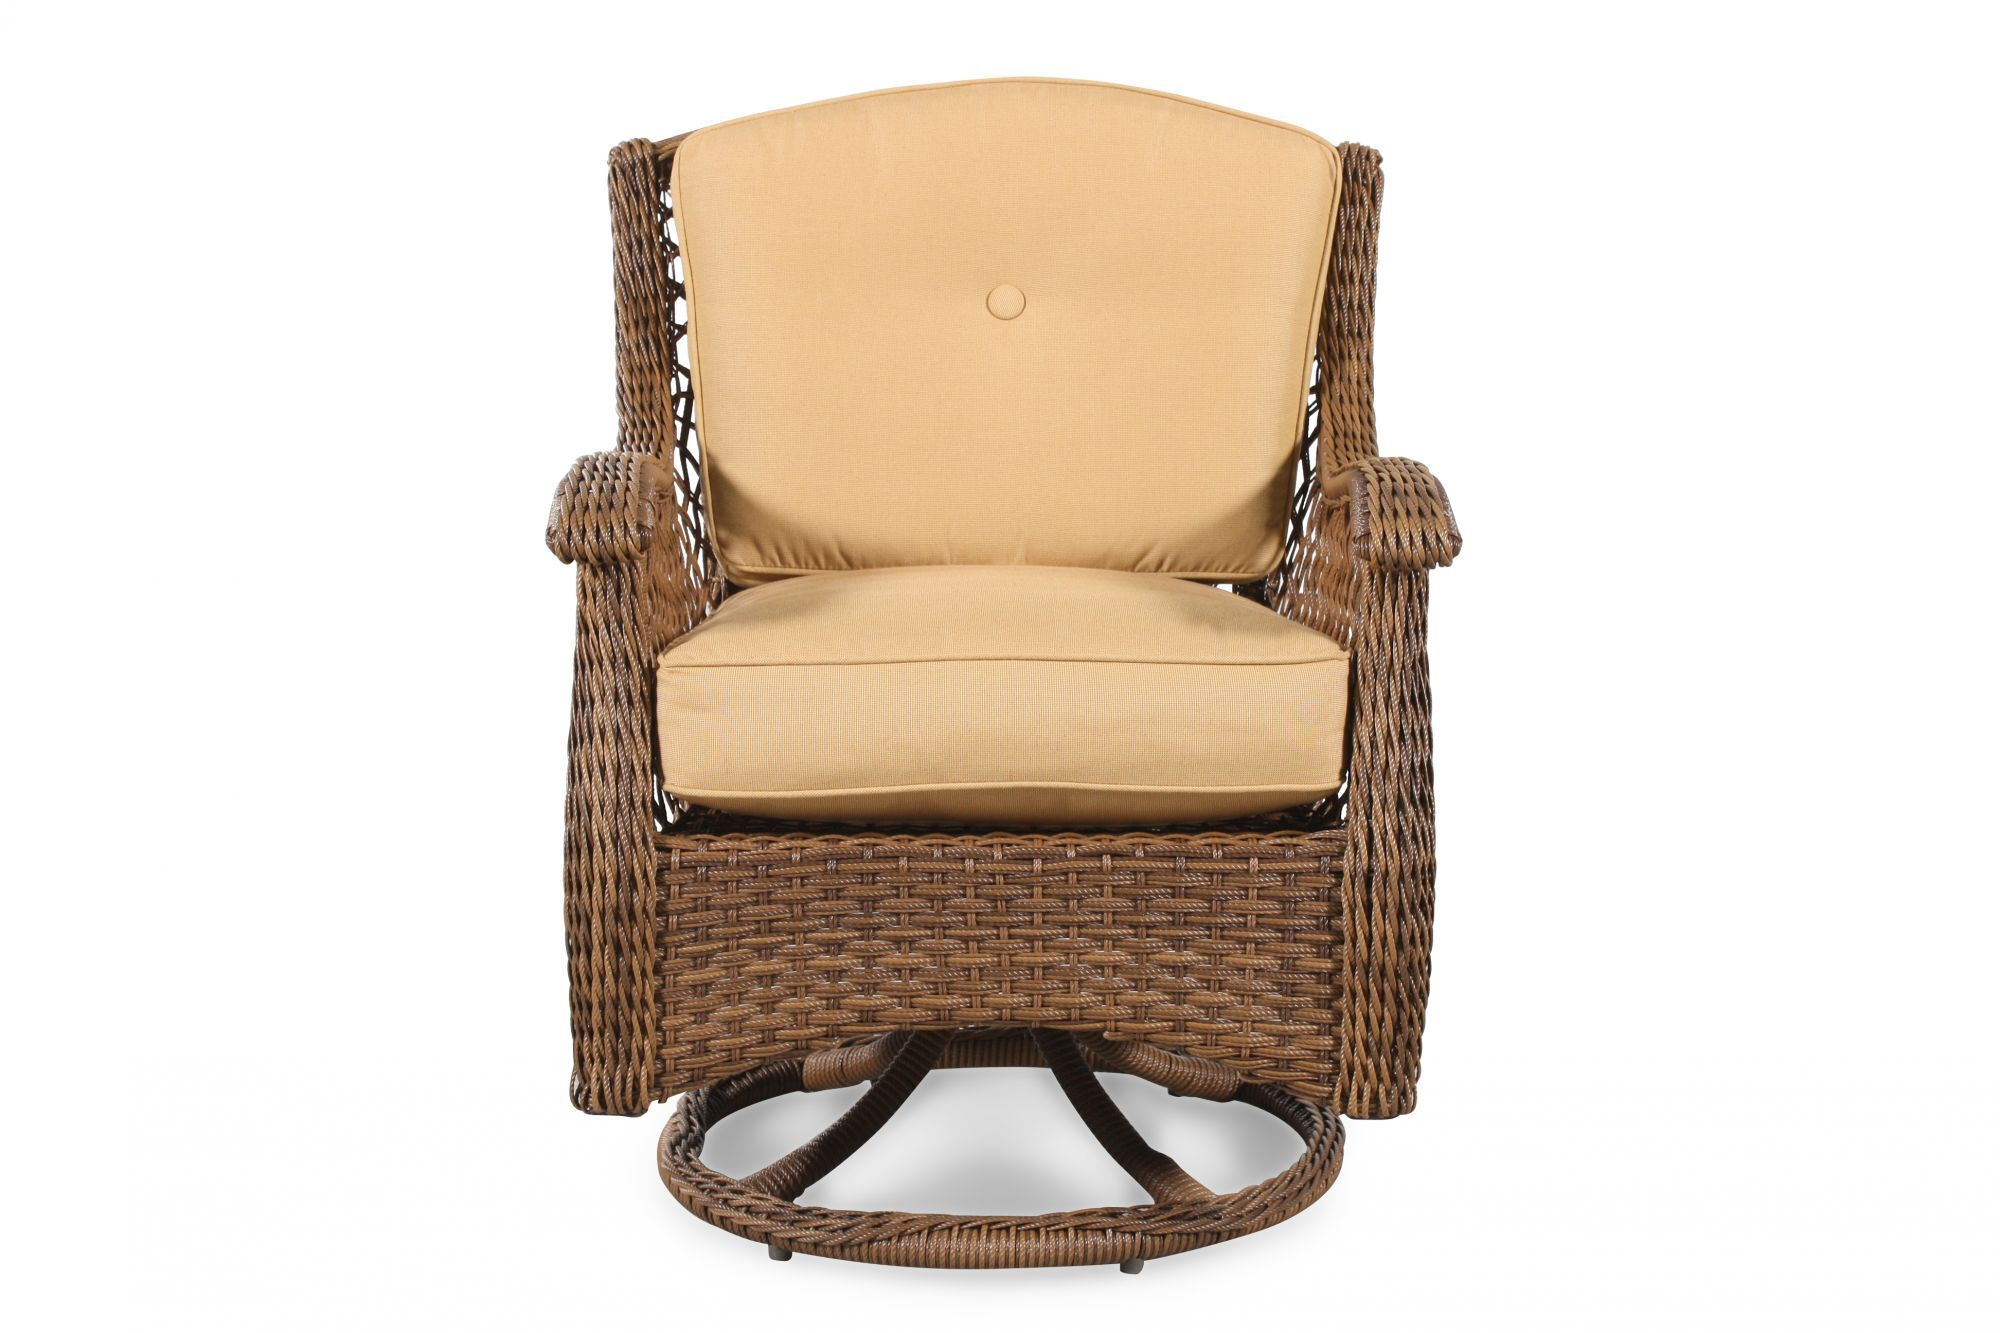 Outdoor Swivel Rocking Chairs Agio Veranda Patio Swivel Rocker Chair Mathis Brothers